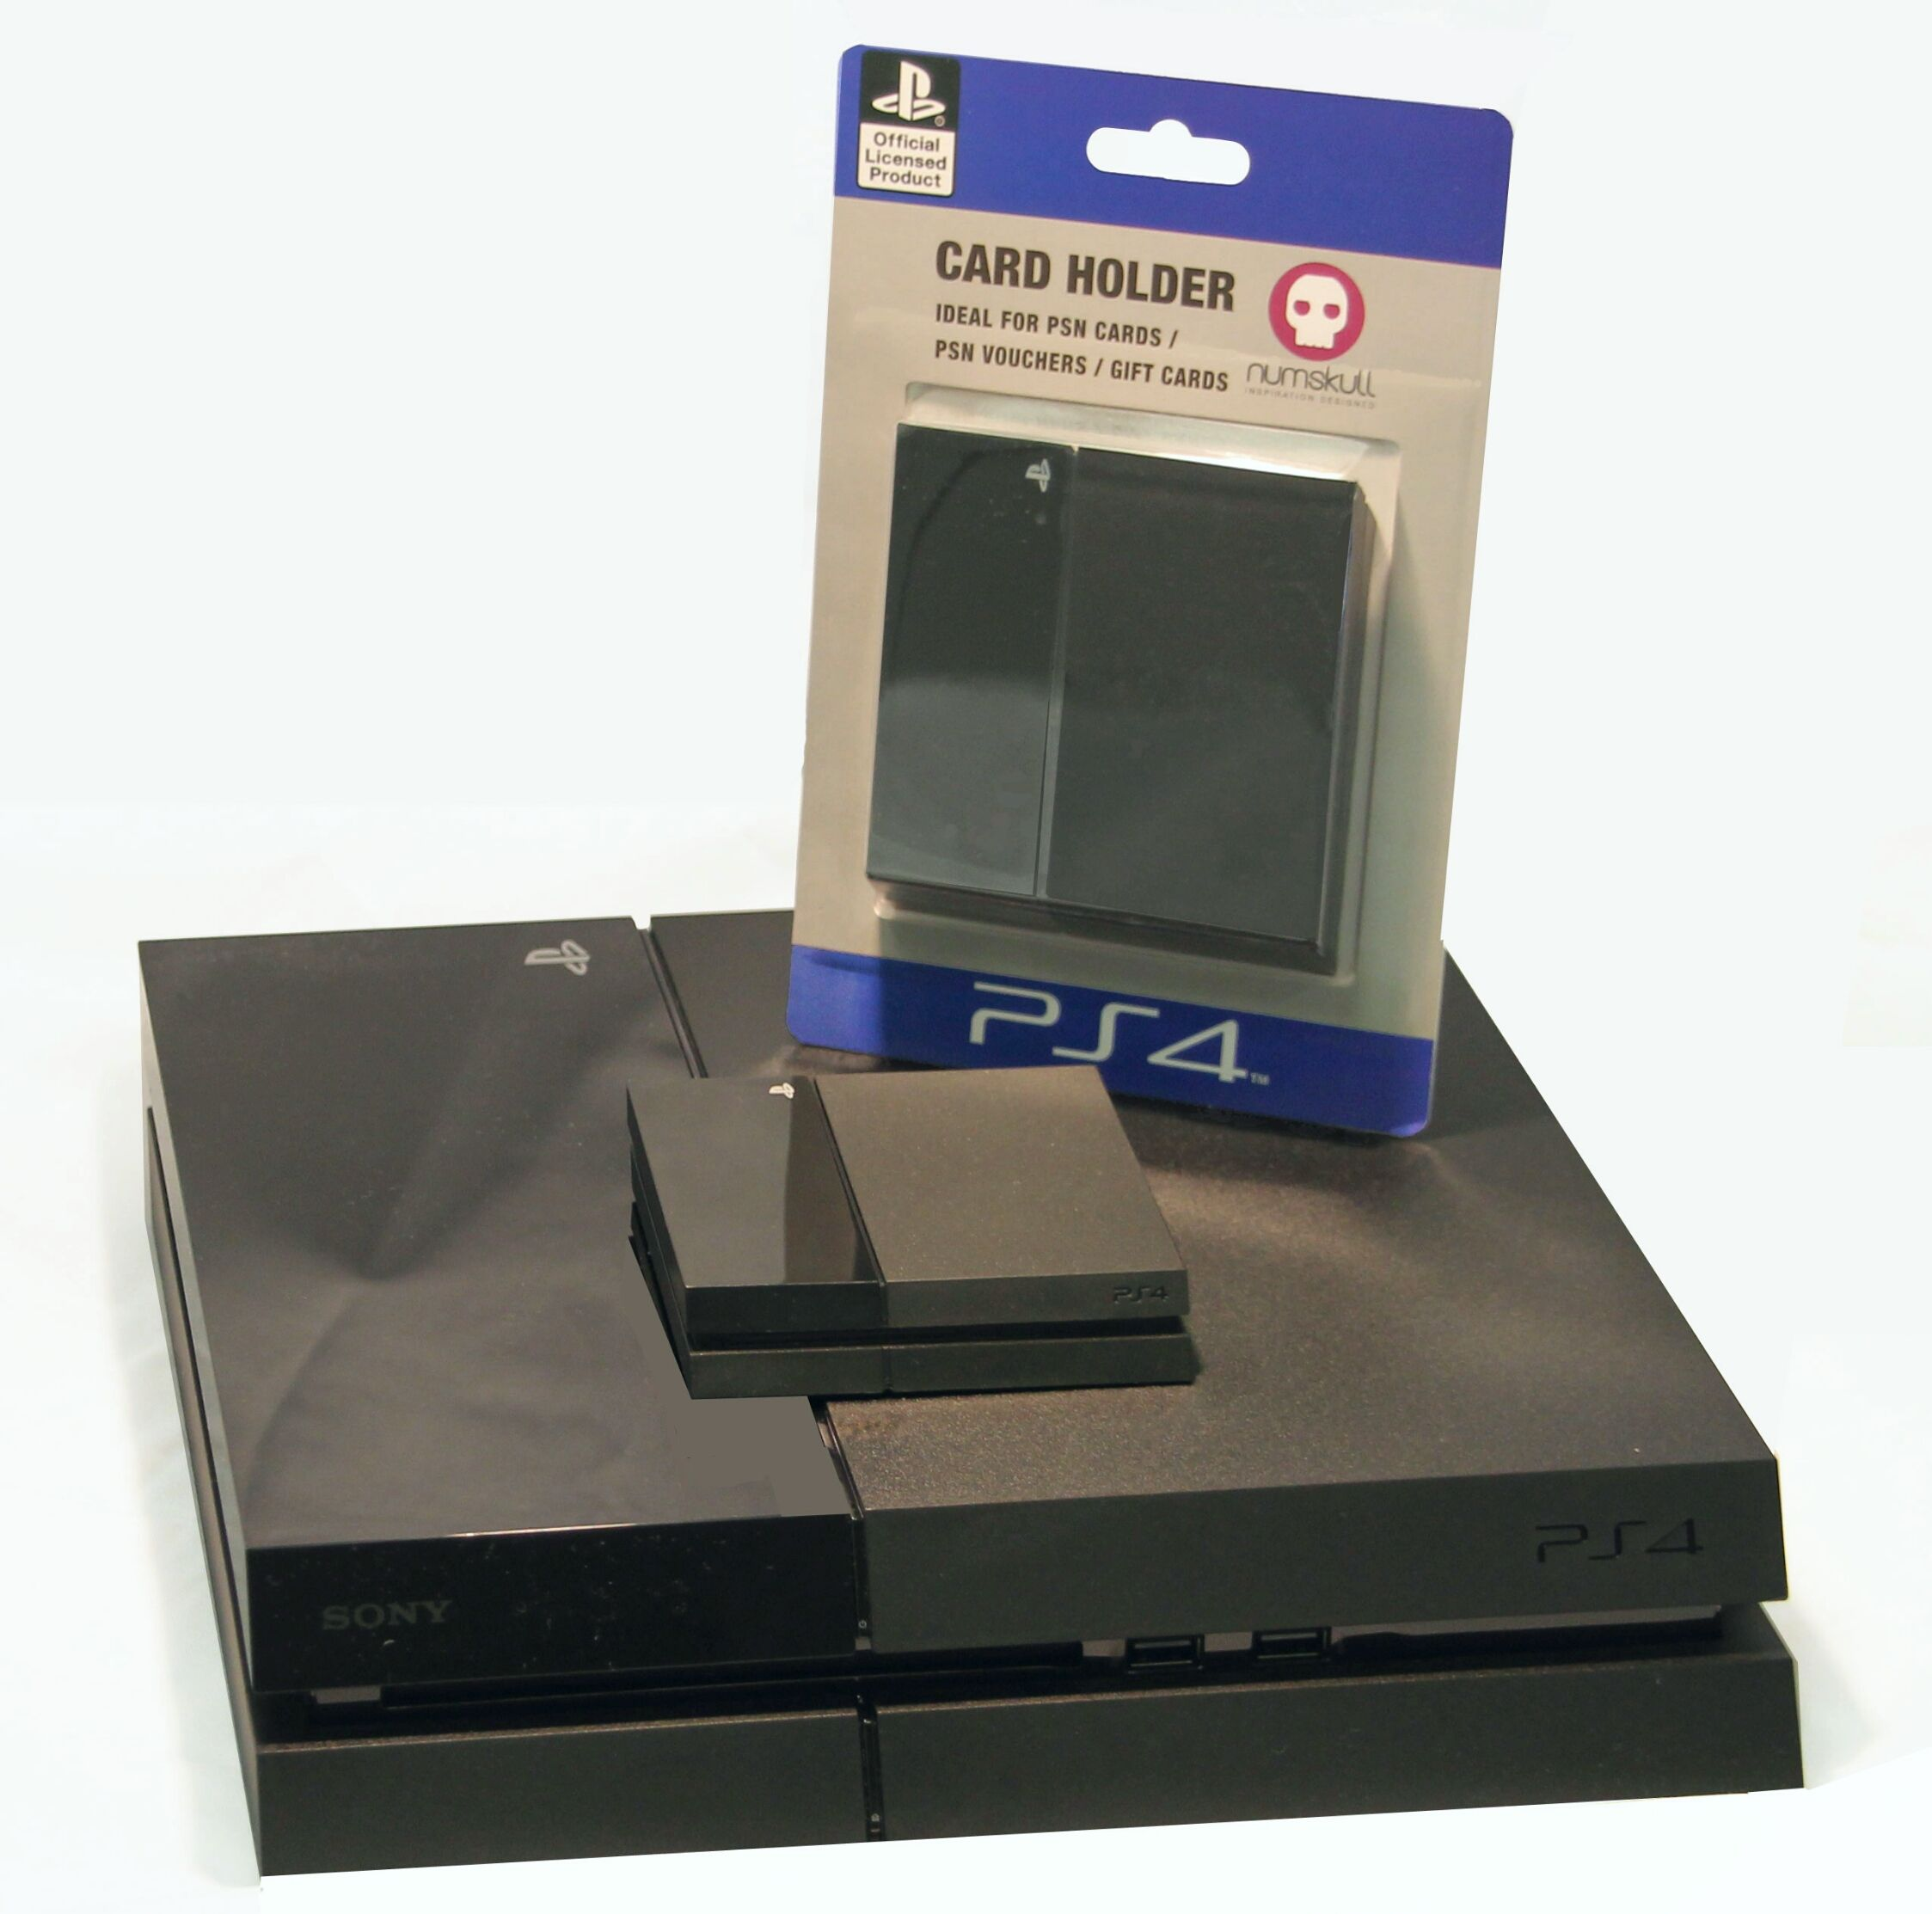 Get a cool #PS4 card holder from Numbskull Designs www.gamesyouloved ...